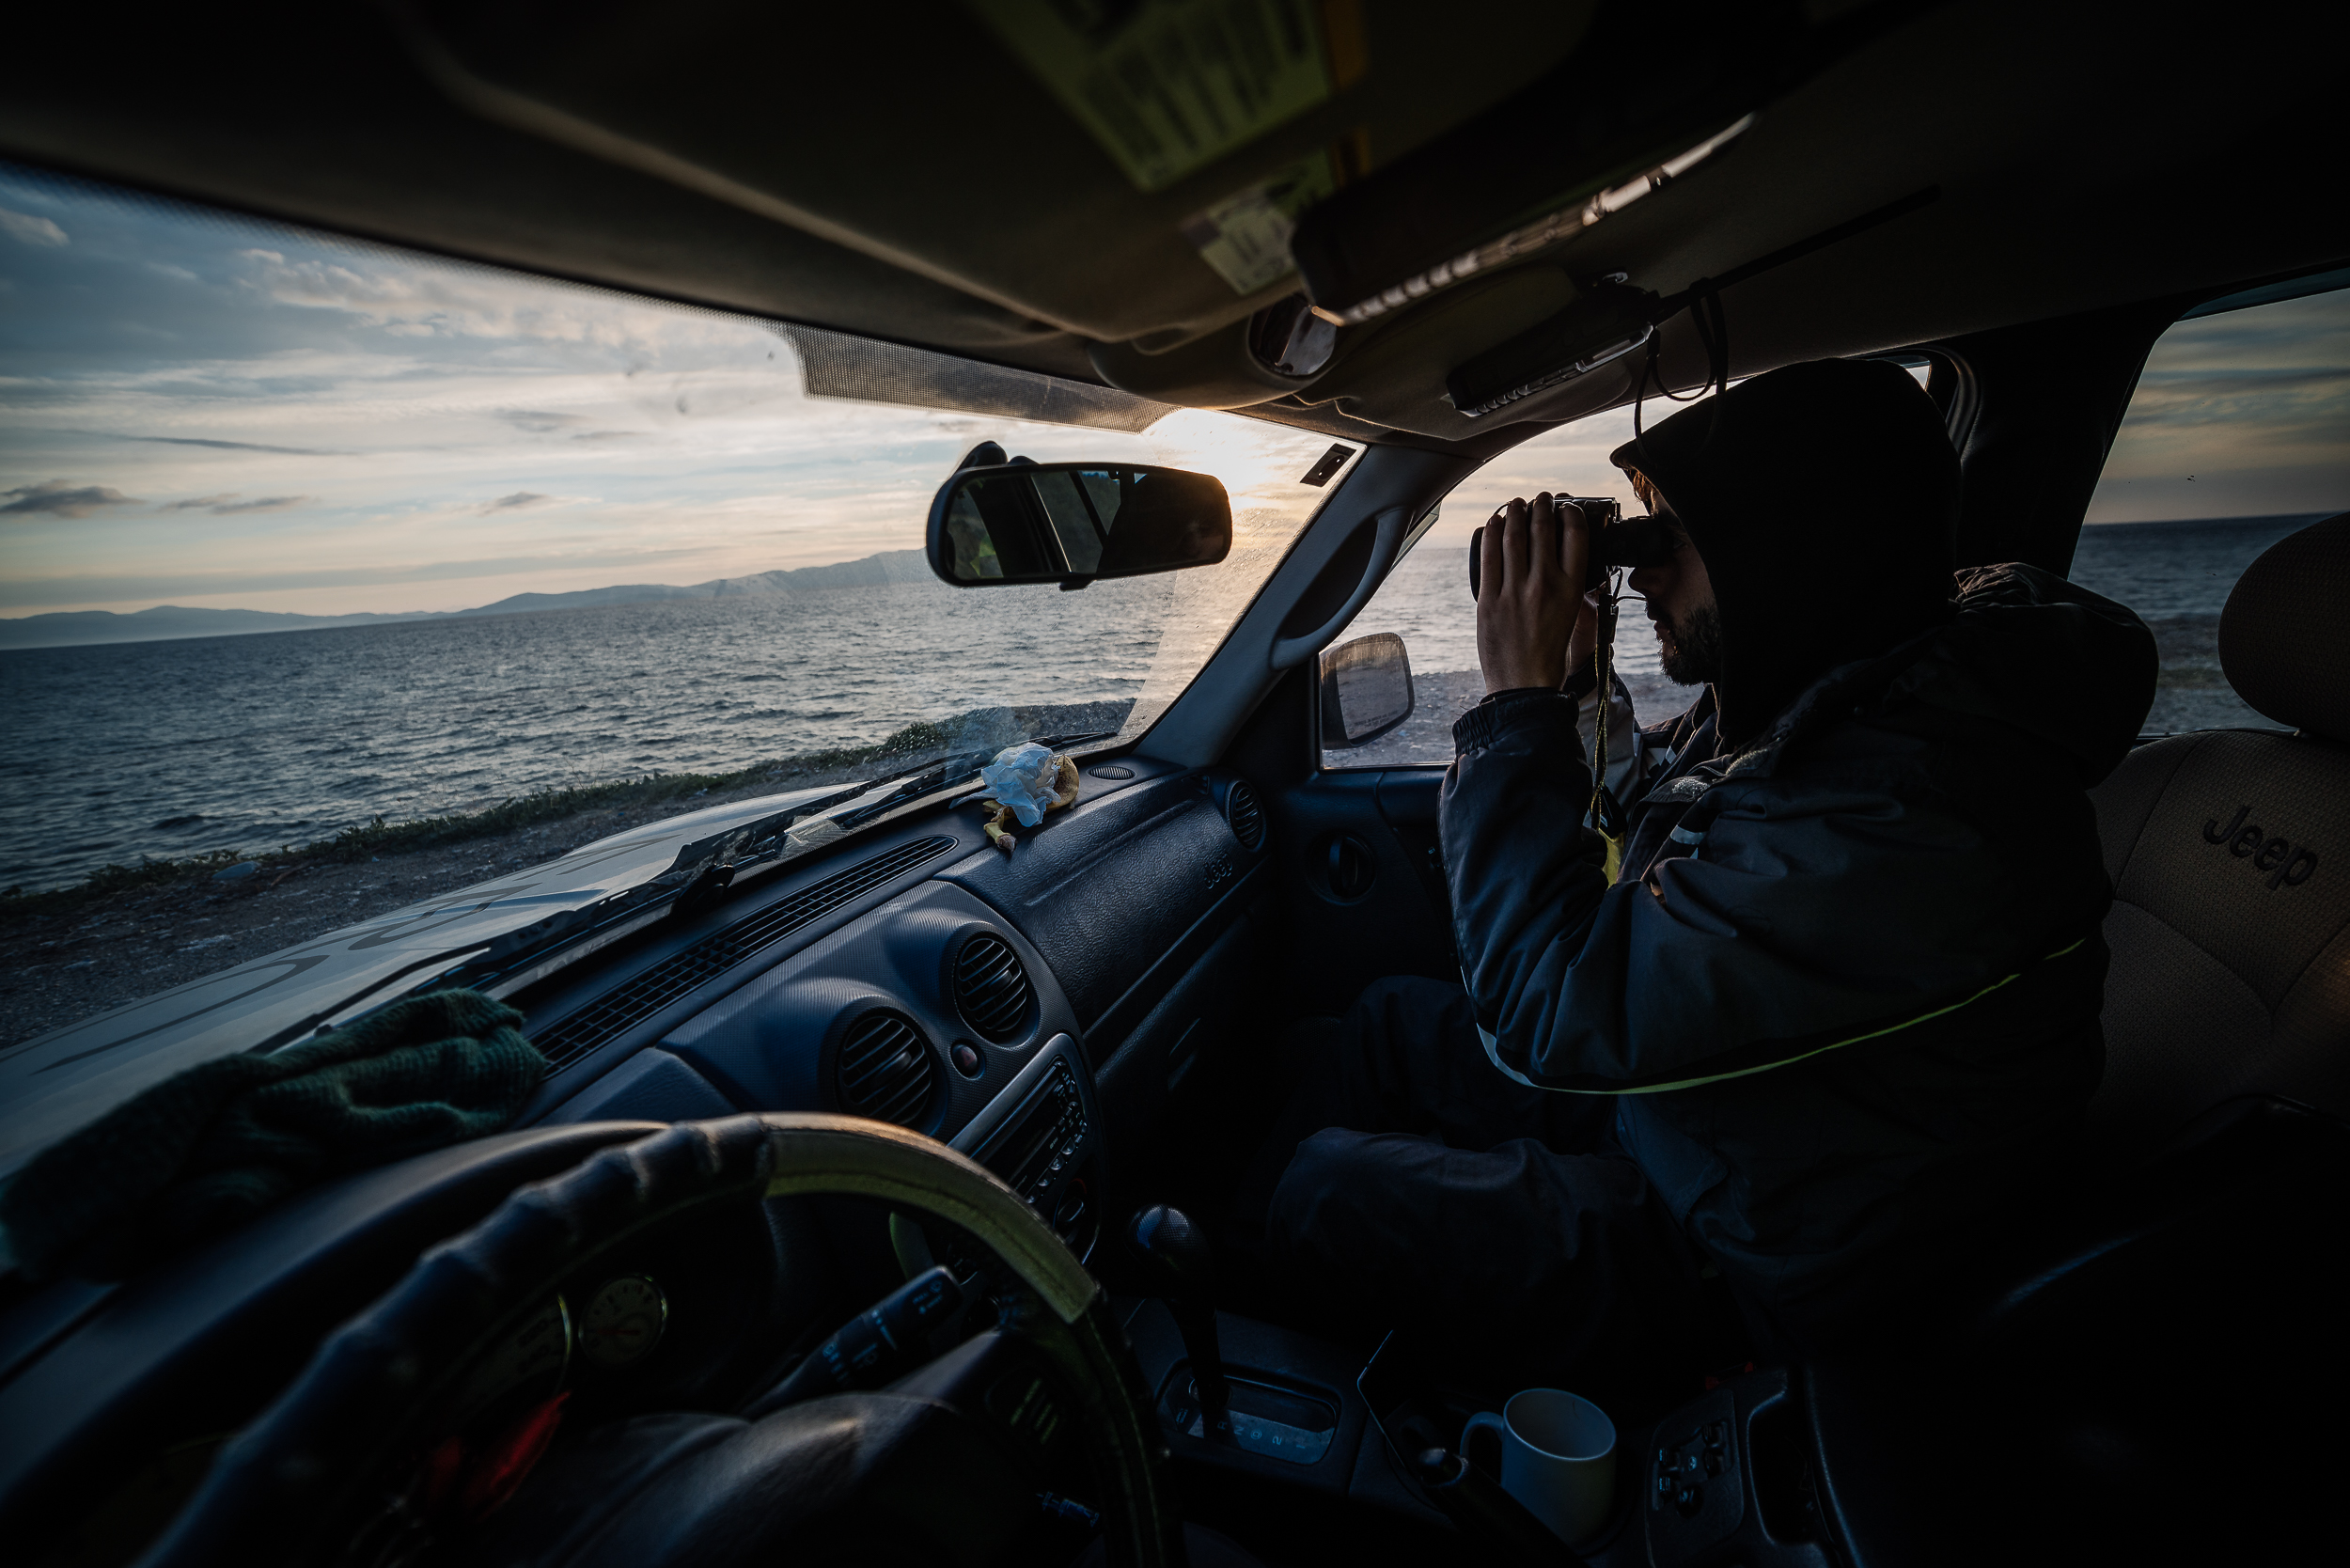 Emergency Rescue Centre International (ERCI)  is the only Non-Governmental Organisation left on the South of Lesvos that carries out Search And Rescue (SAR) Operations to assist migrant boats arriving from Turkey.